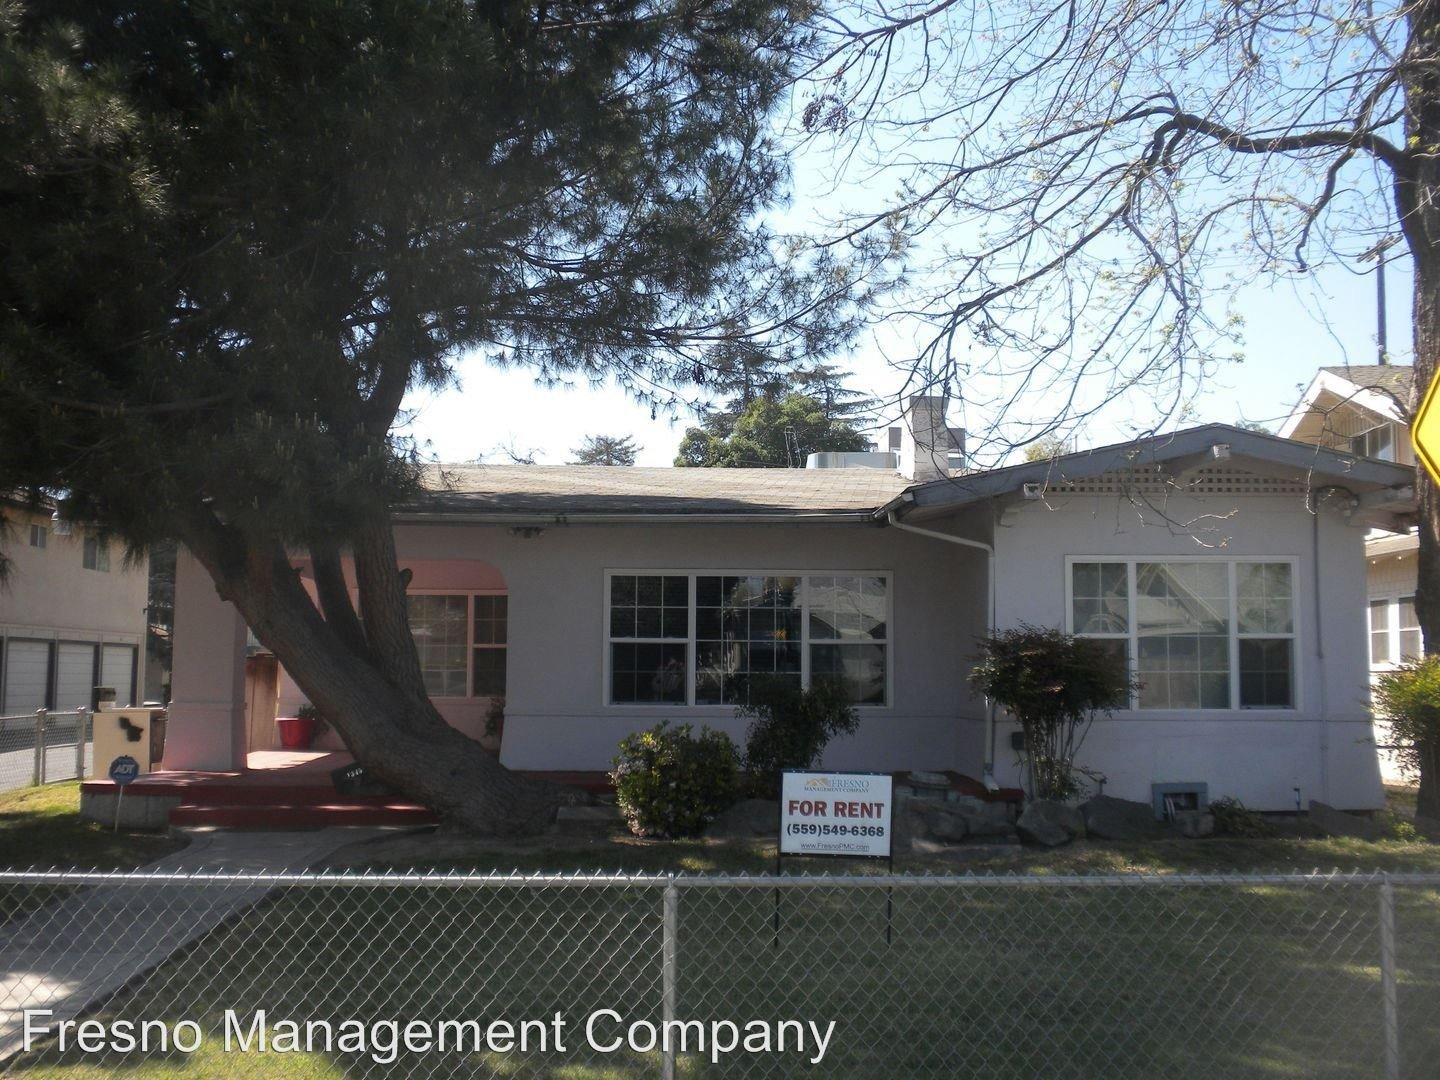 Best 1005 W Peralta Way Fresno Ca 93705 3 Bedroom Apartment For Rent Padmapper With Pictures